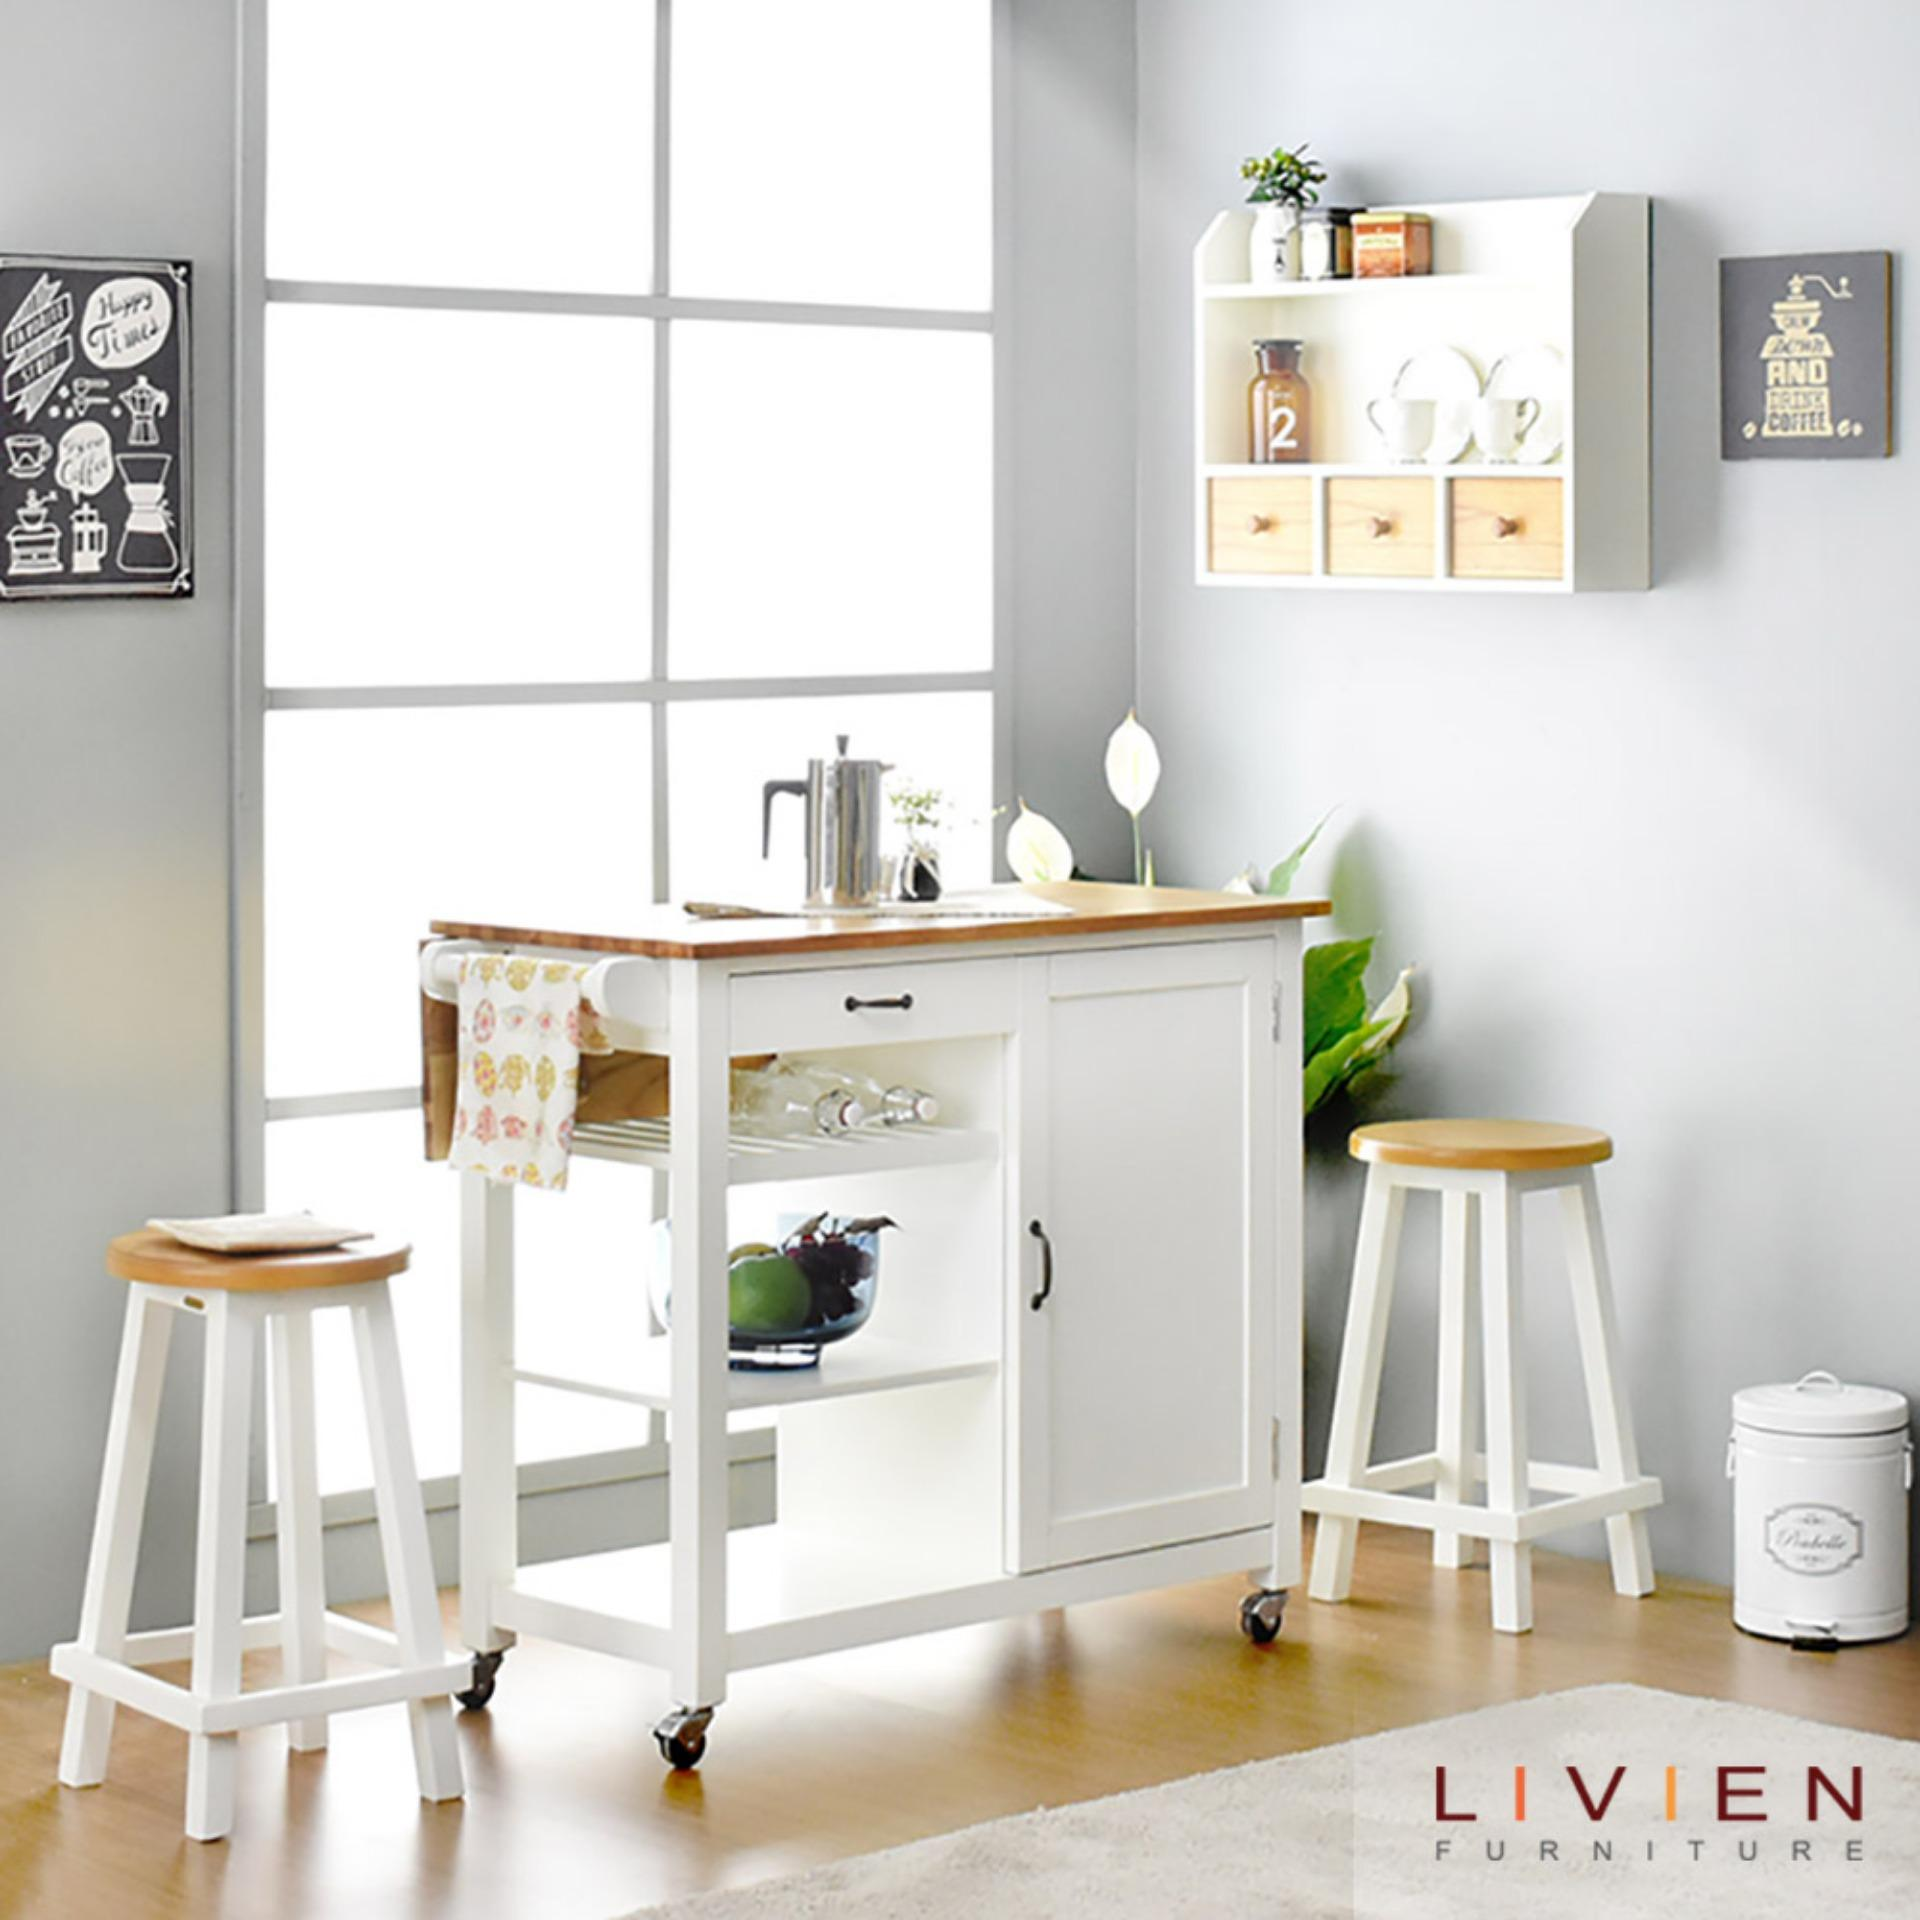 Gambar Meja Dapur Livien Kitchen Troley Table Maple Story Meja Troli Dapur Meja Dapur